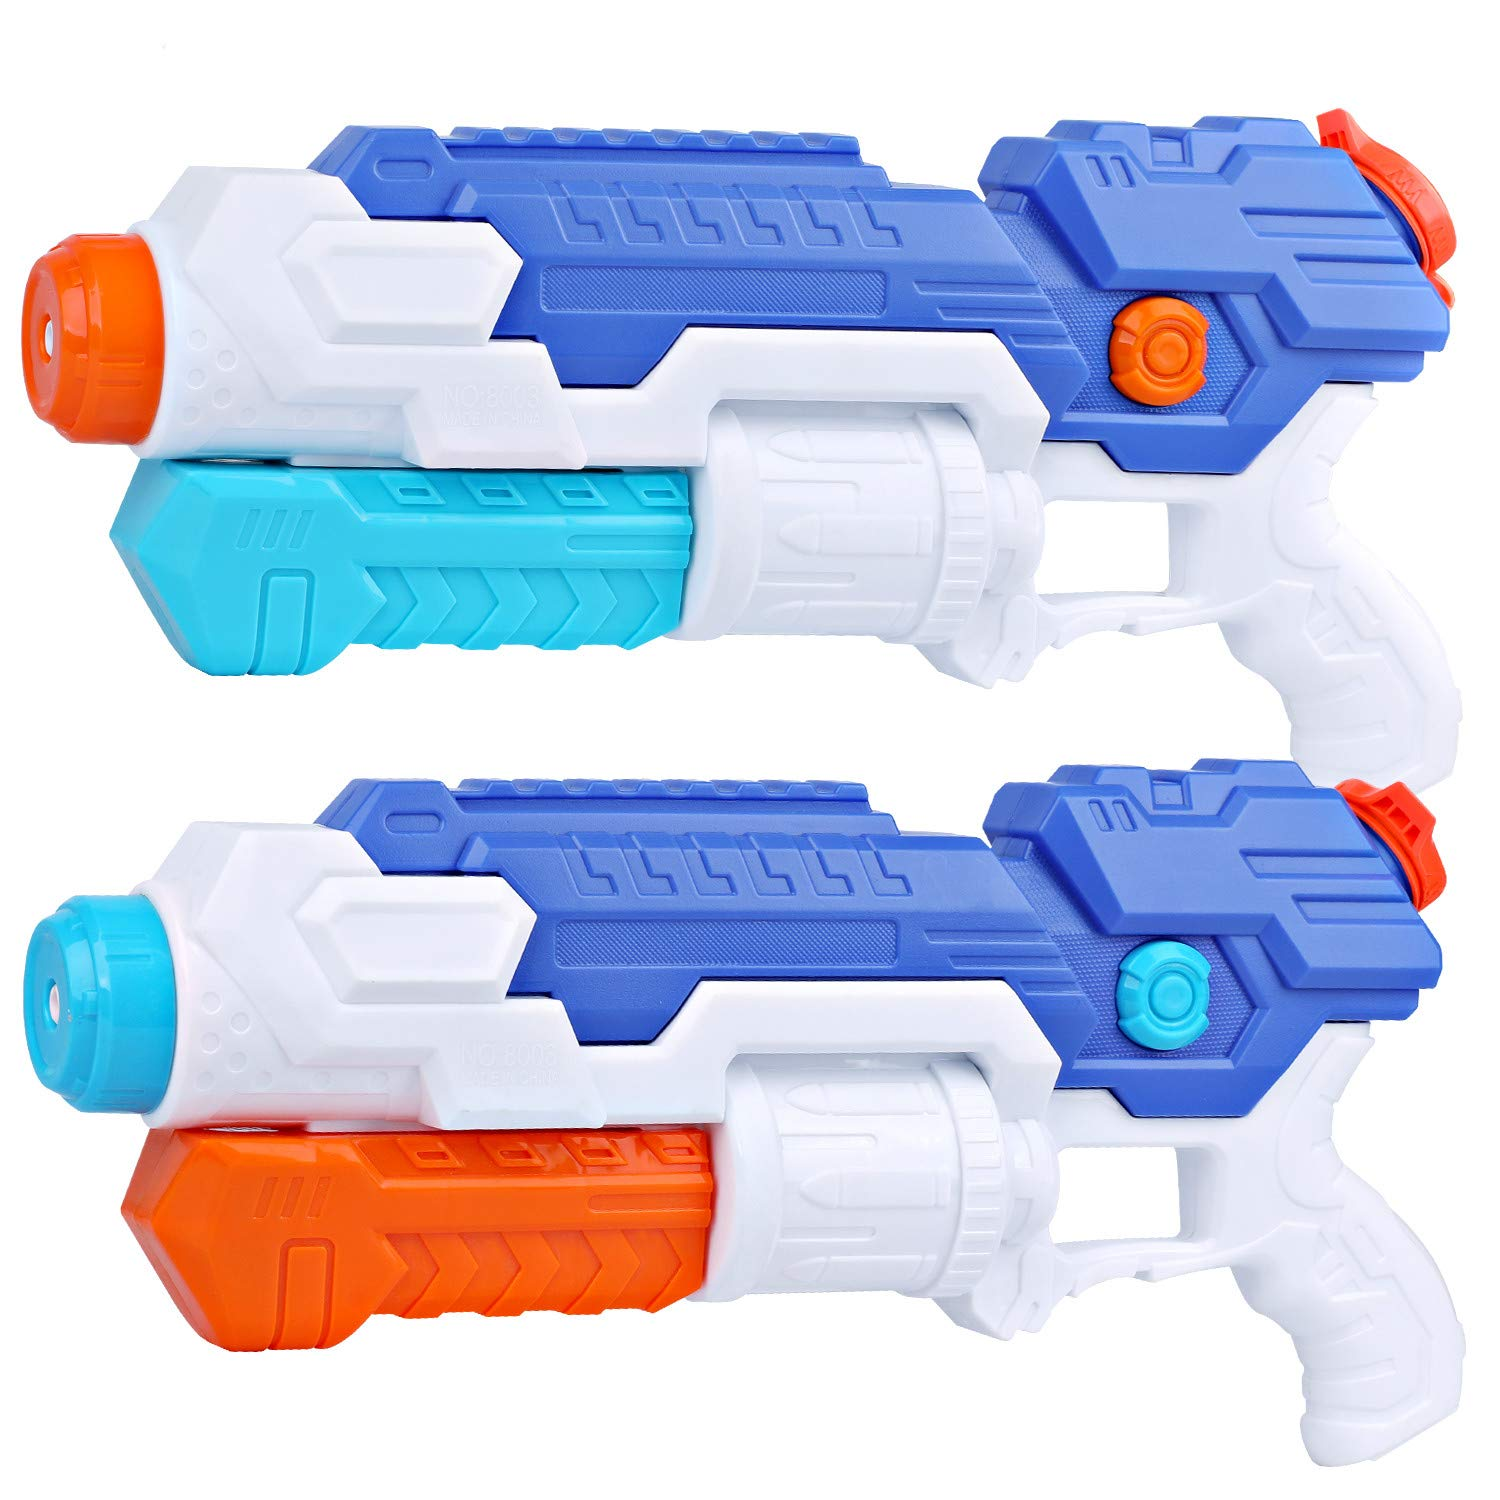 PEFECEVE Water Gun Super Soaker Blaster for Kids, 2 Pack 800 CC Capacity 40Ft Long Range Squirt Guns for Adults, Pool Toys for Teens Swimming Beach Sand Water Fighting Air Cannon Toy by PEFECEVE